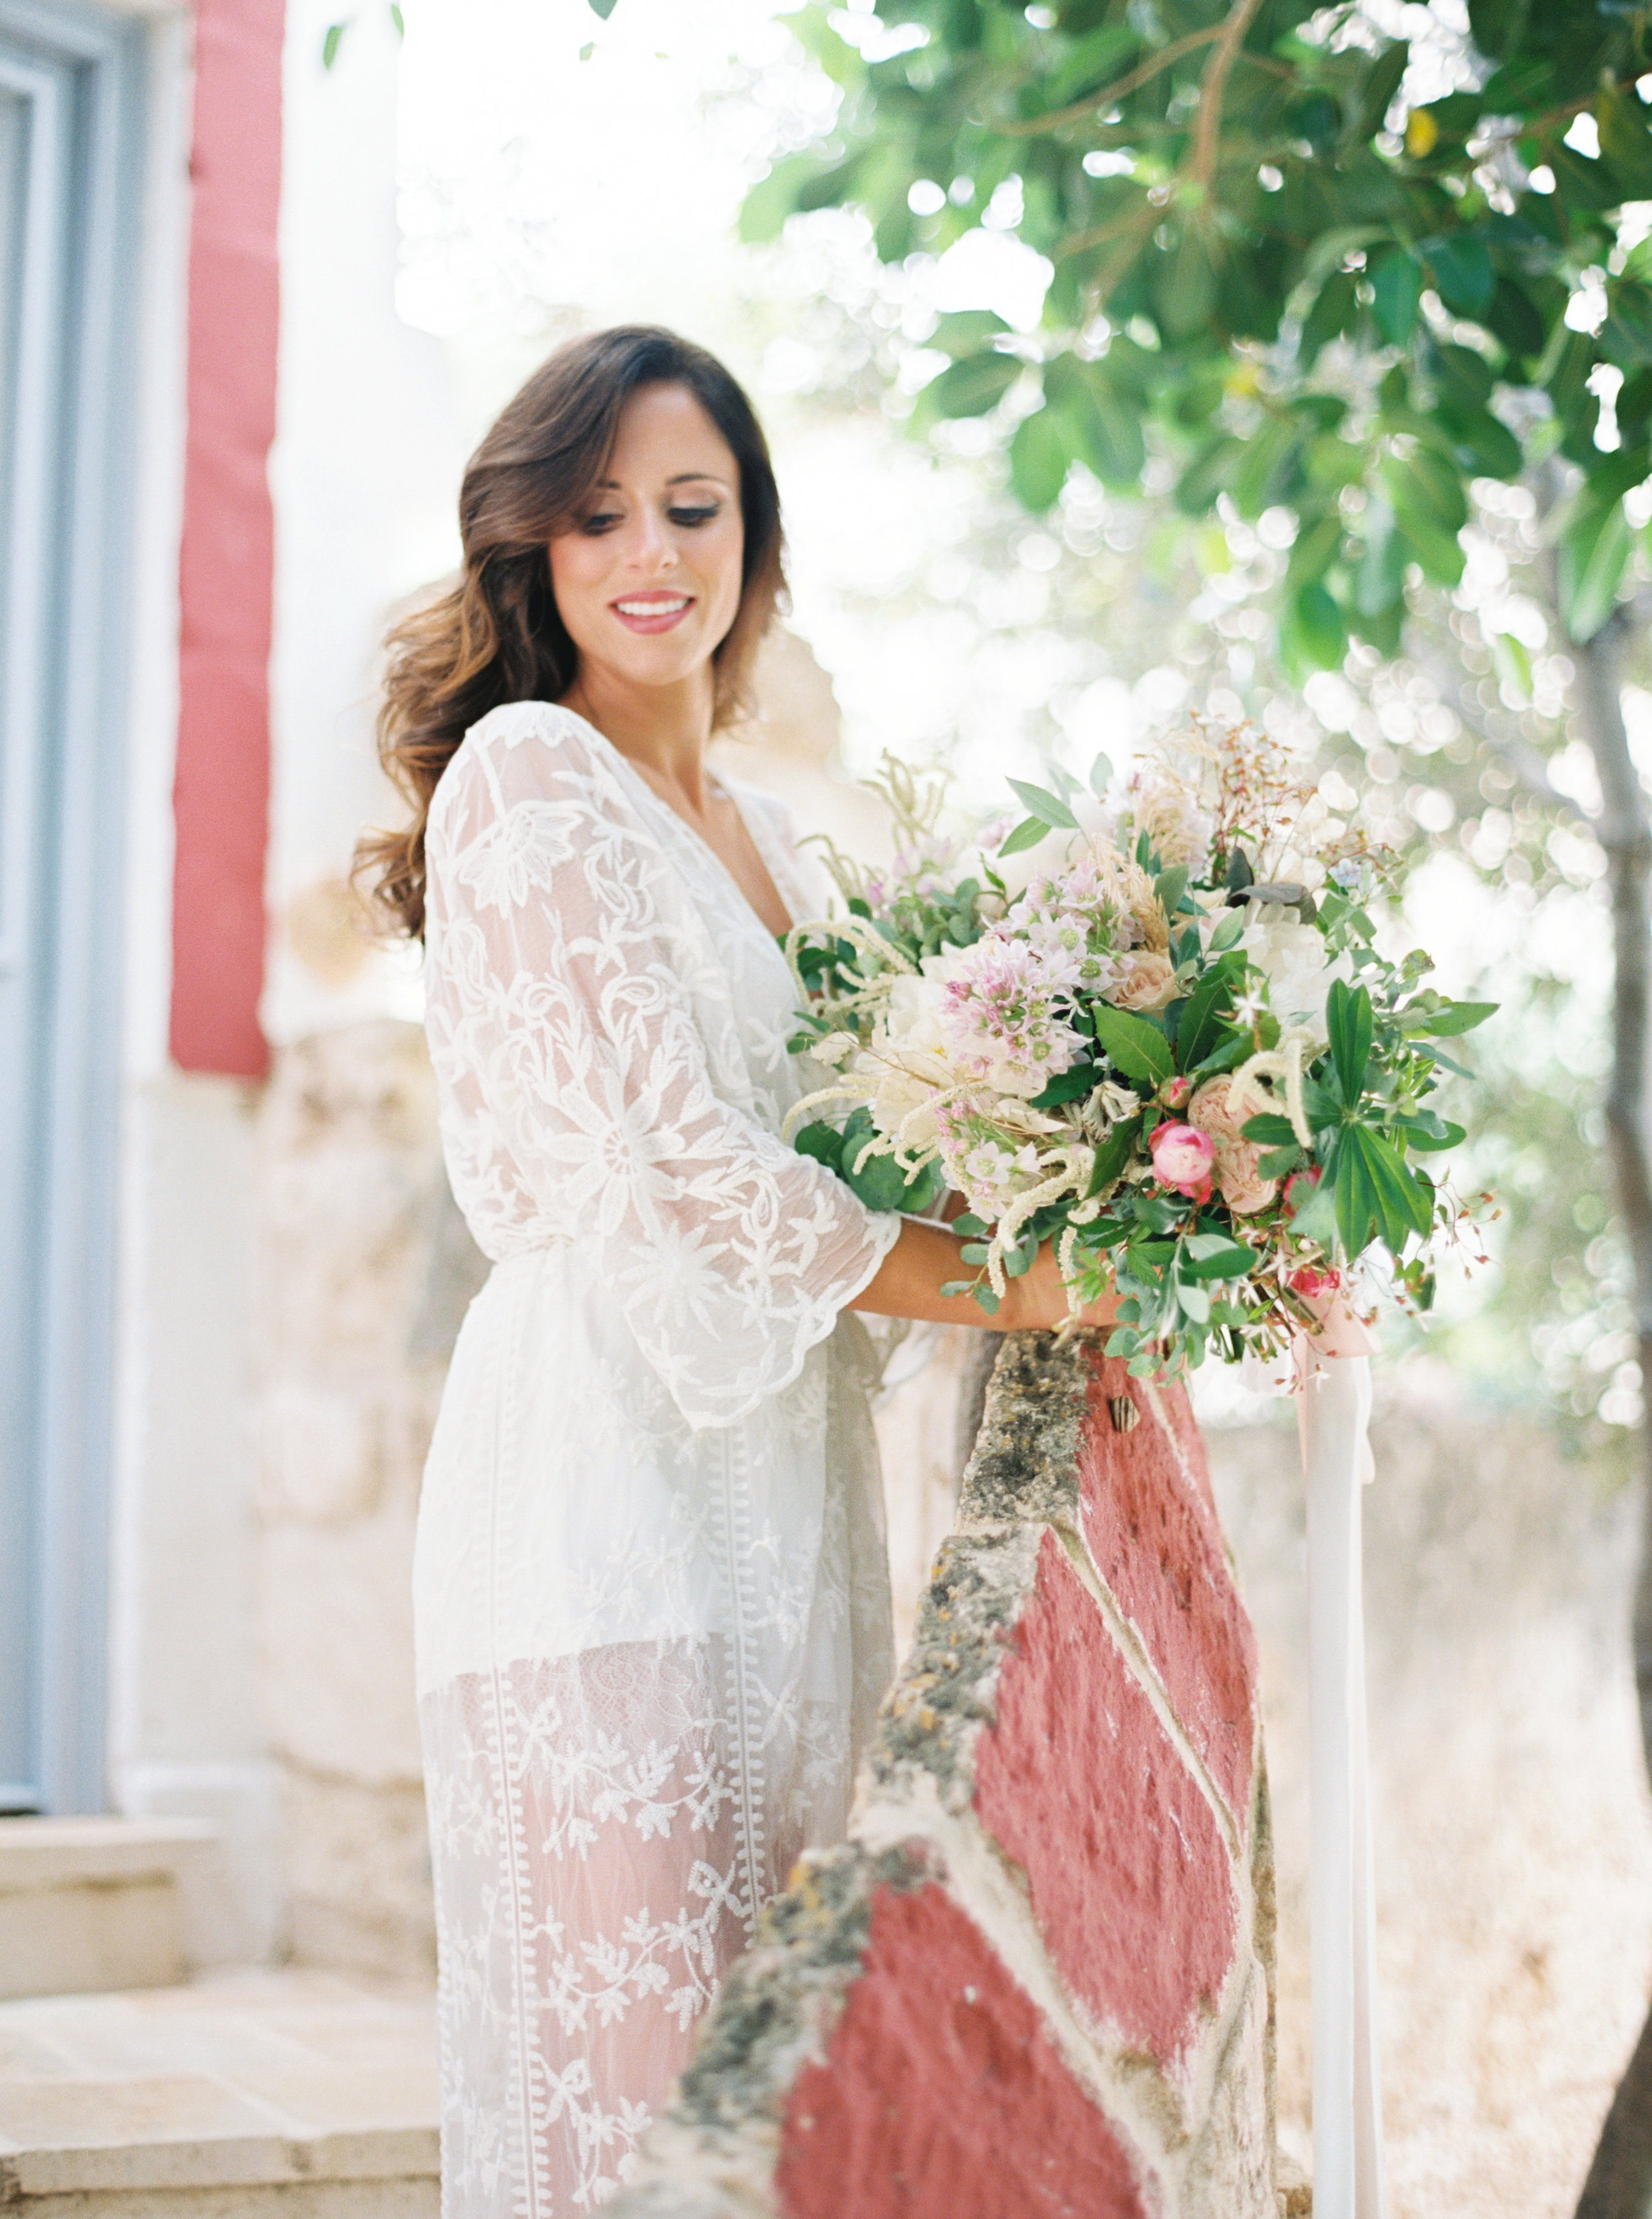 Puglia, Italy destination wedding at Masseria Montenapoleone - Planned by Meggie Francisco, photographed by Tracy Enoch, video by Innar Hunt. Floral by Chiara Sperti Floral Events.